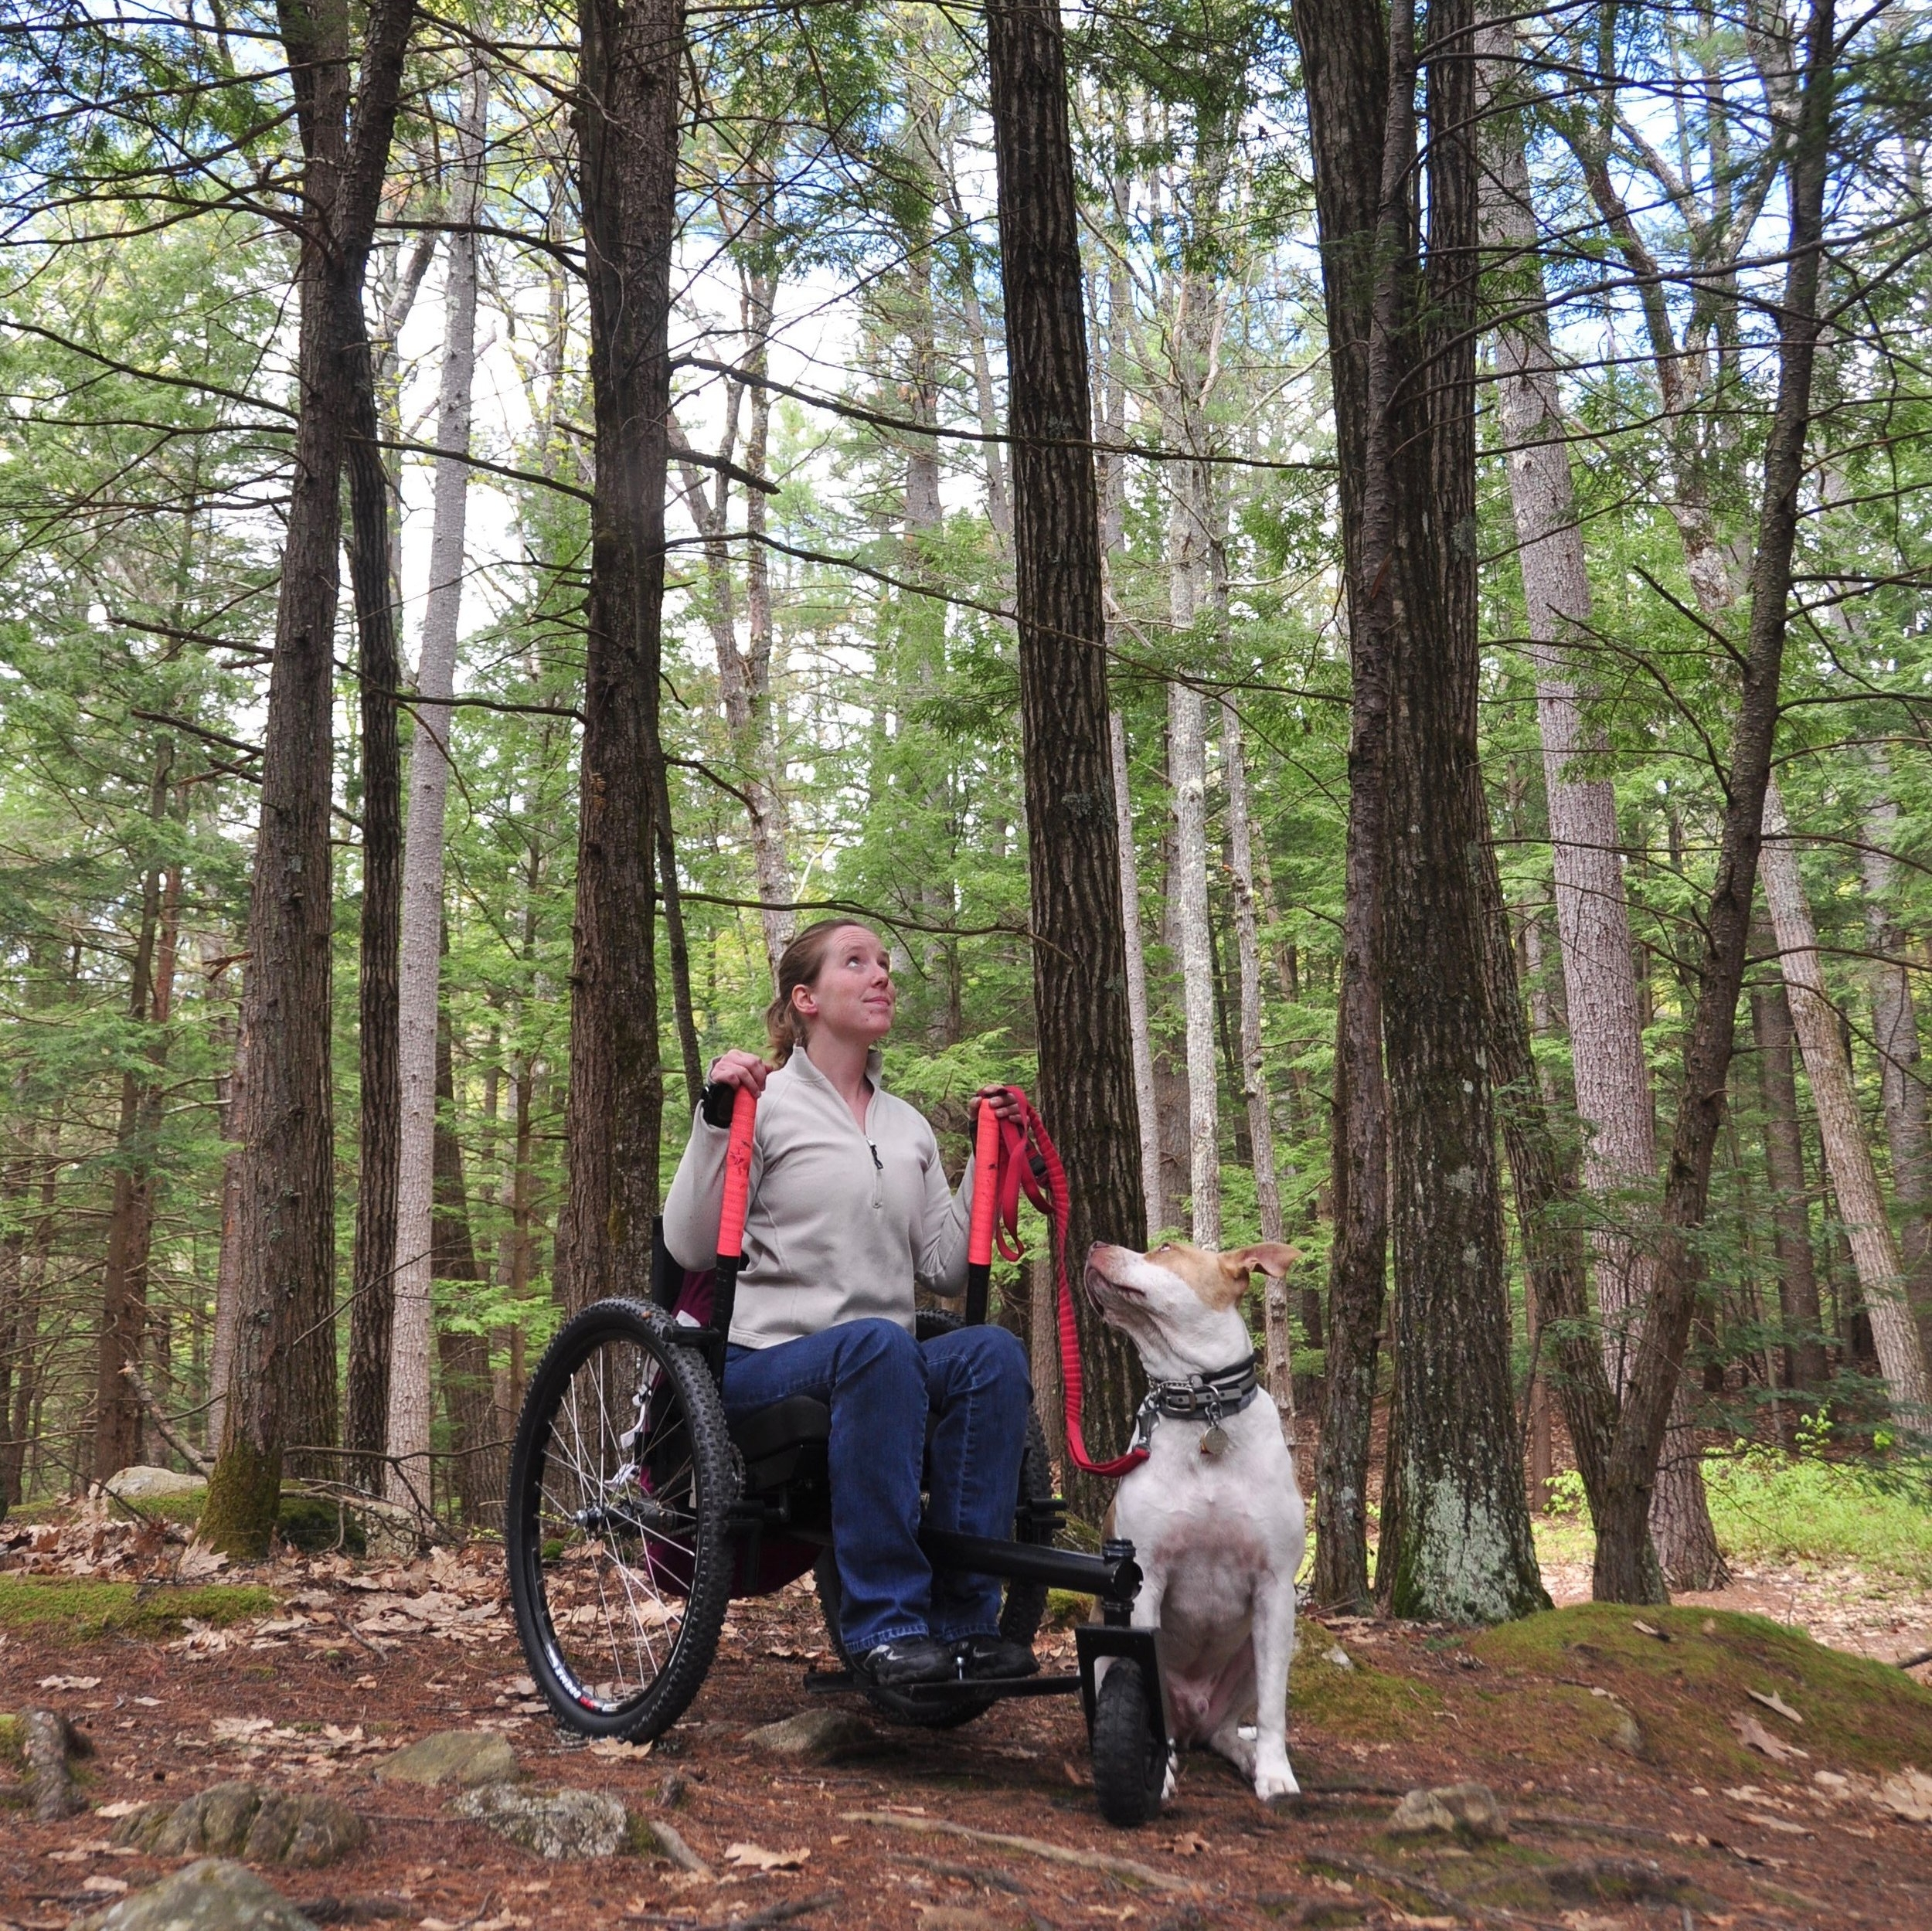 MAY:   Conditions will now allow me to move up into higher elevations to explore. However, the spring melt makes the ground quite soft, and even downright muddy. Luckily, my Freedom Chair not only keeps my hands clean over this mucky terrain, but it allows me the ability to power through it.